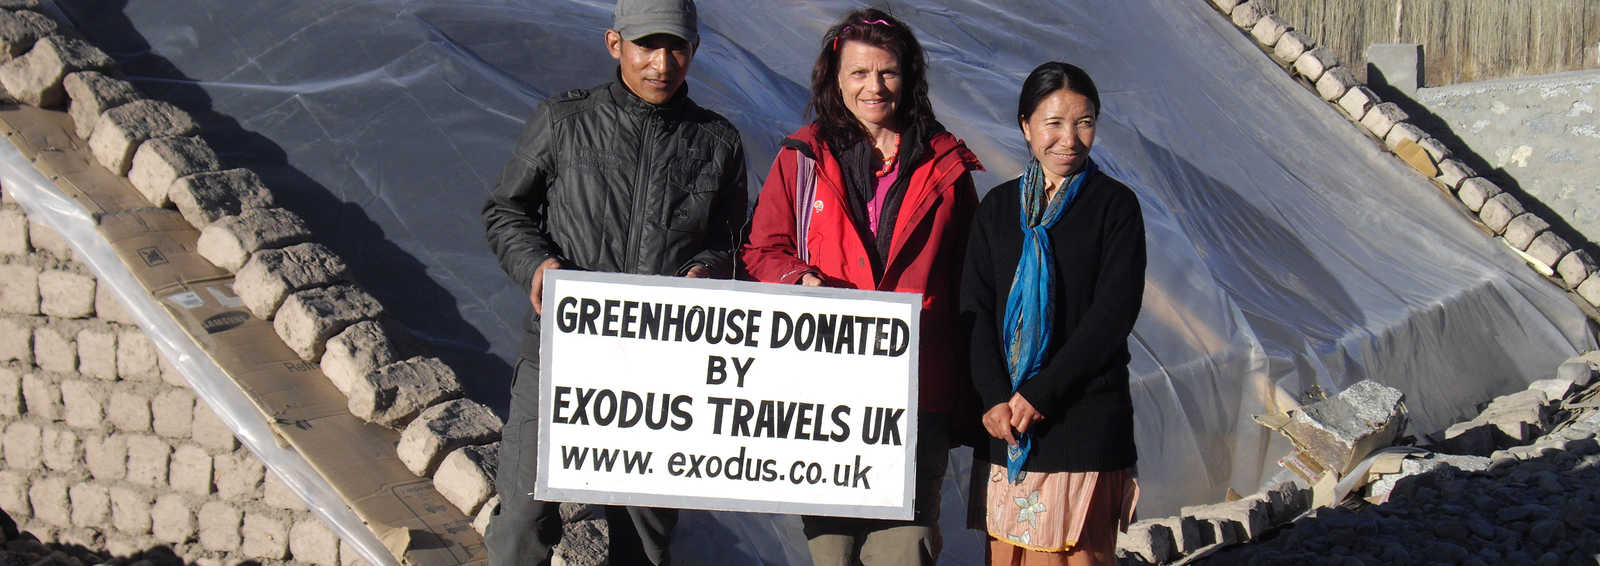 Greenhouse in Ladakh - Exodus RT project